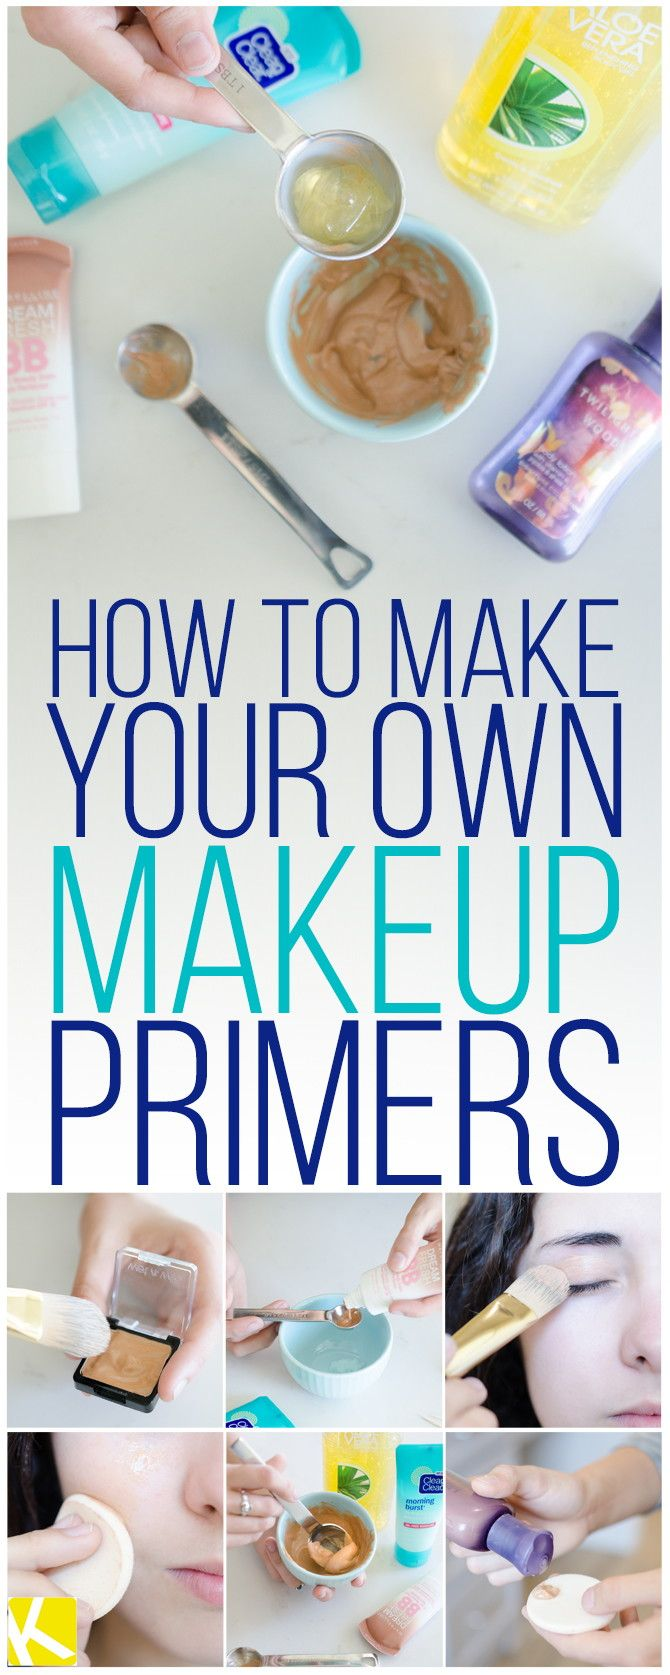 How+to+Make+Your+Own+Makeup+Primers